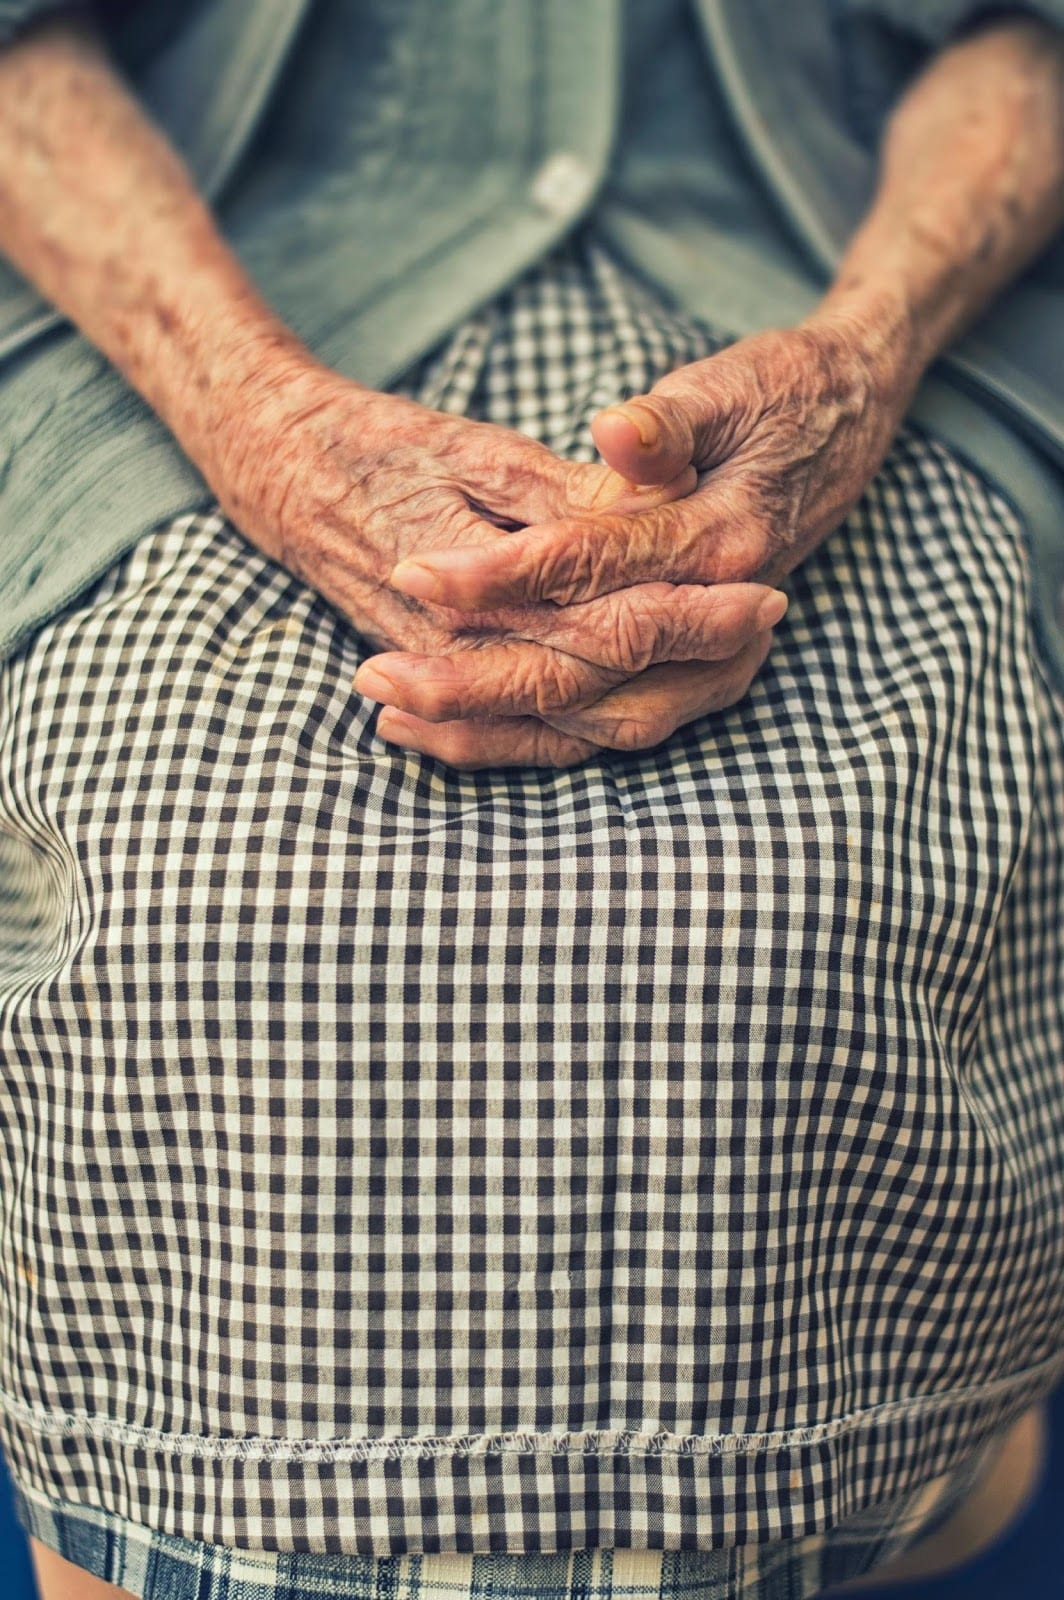 Photo of Elderly Hands Folded in a Lap